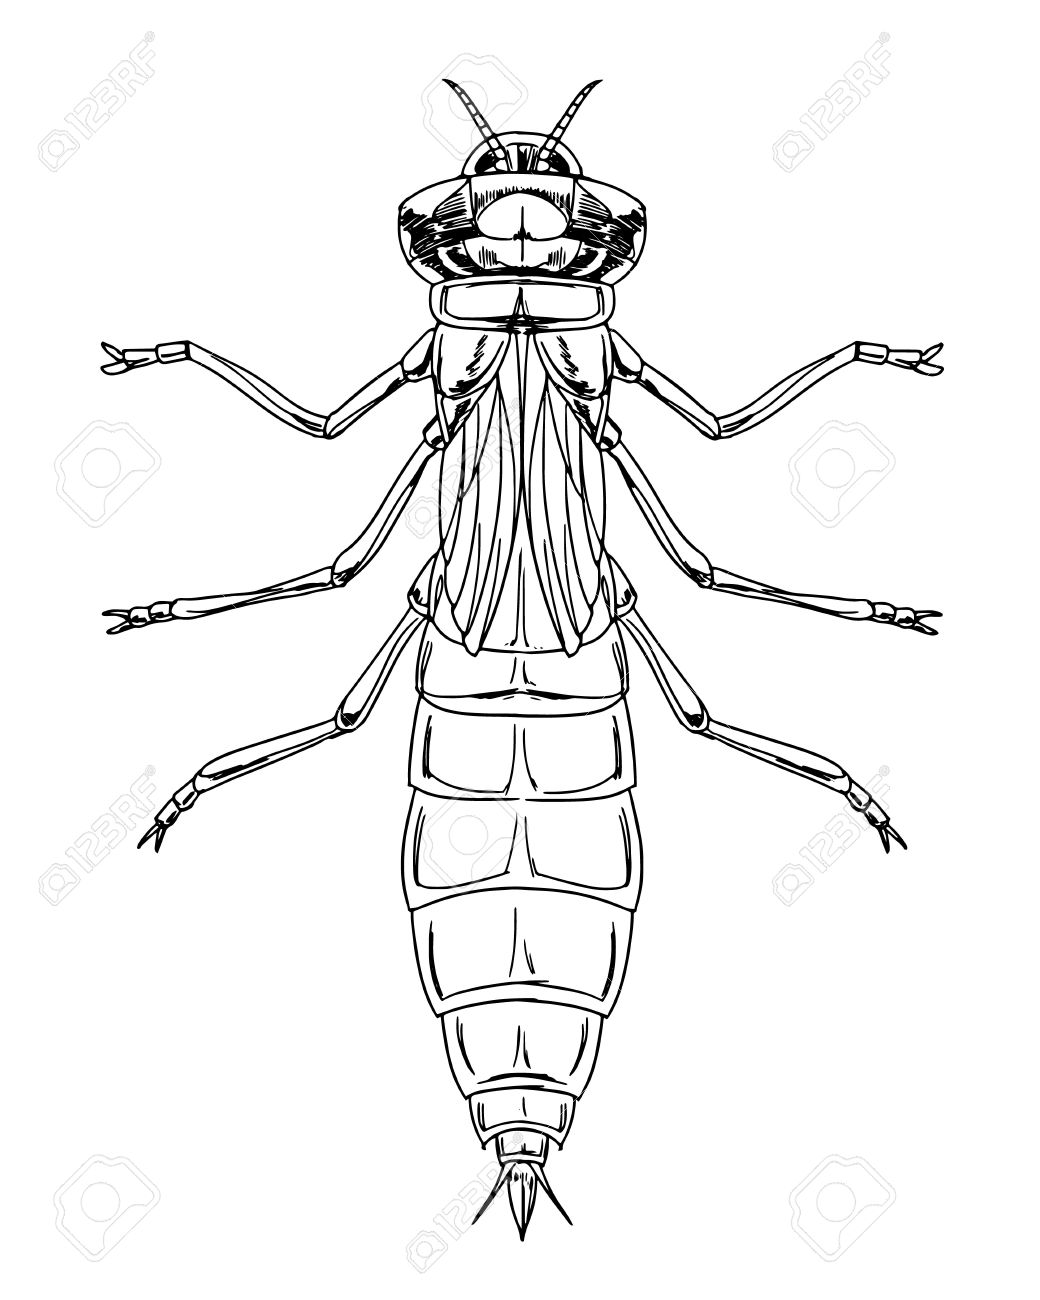 Sketch Of A Dragonfly Nymph Royalty Free Cliparts, Vectors, And ...